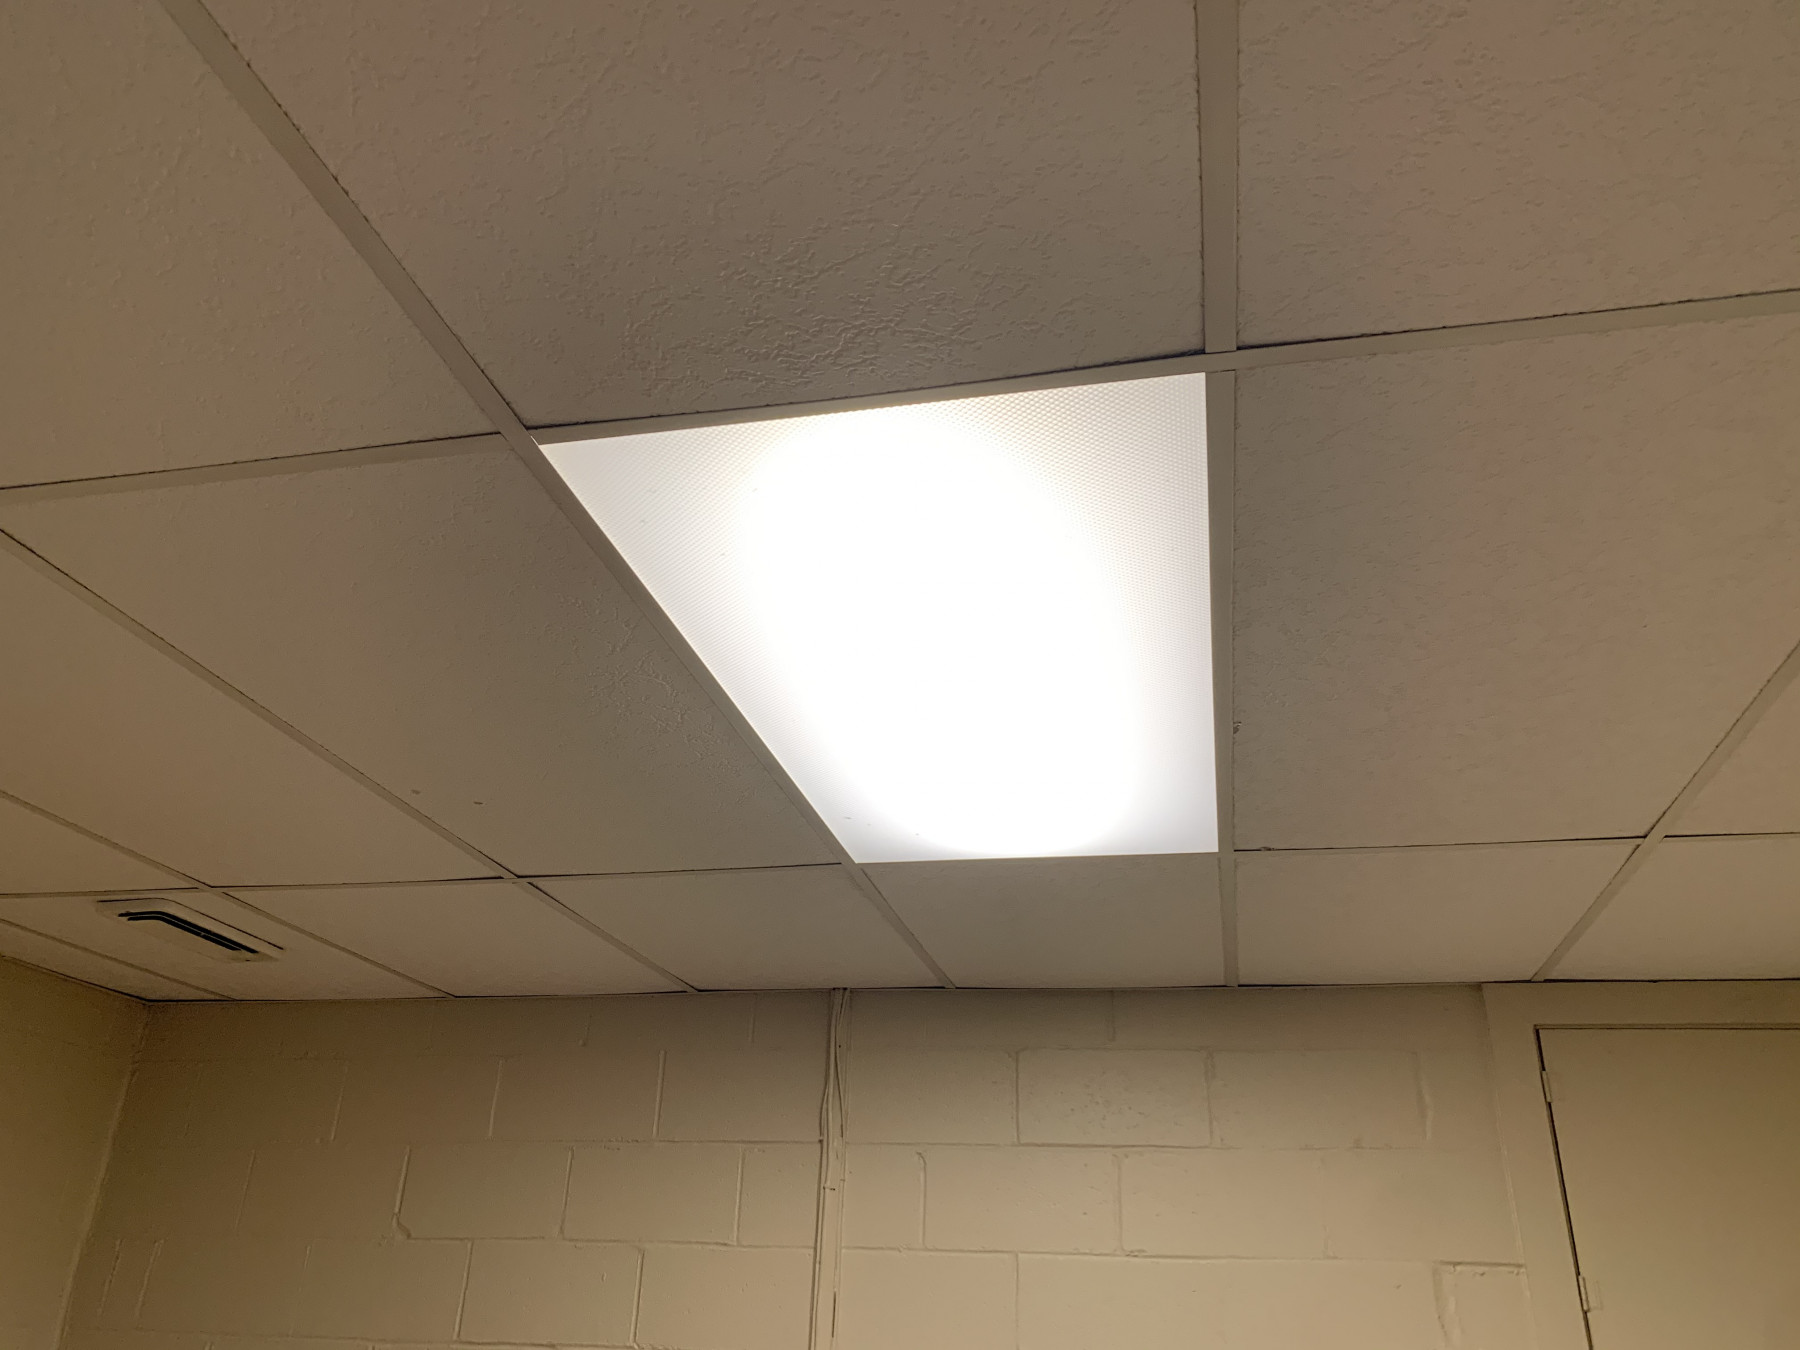 suspended ceiling lighting - Tim Kyle